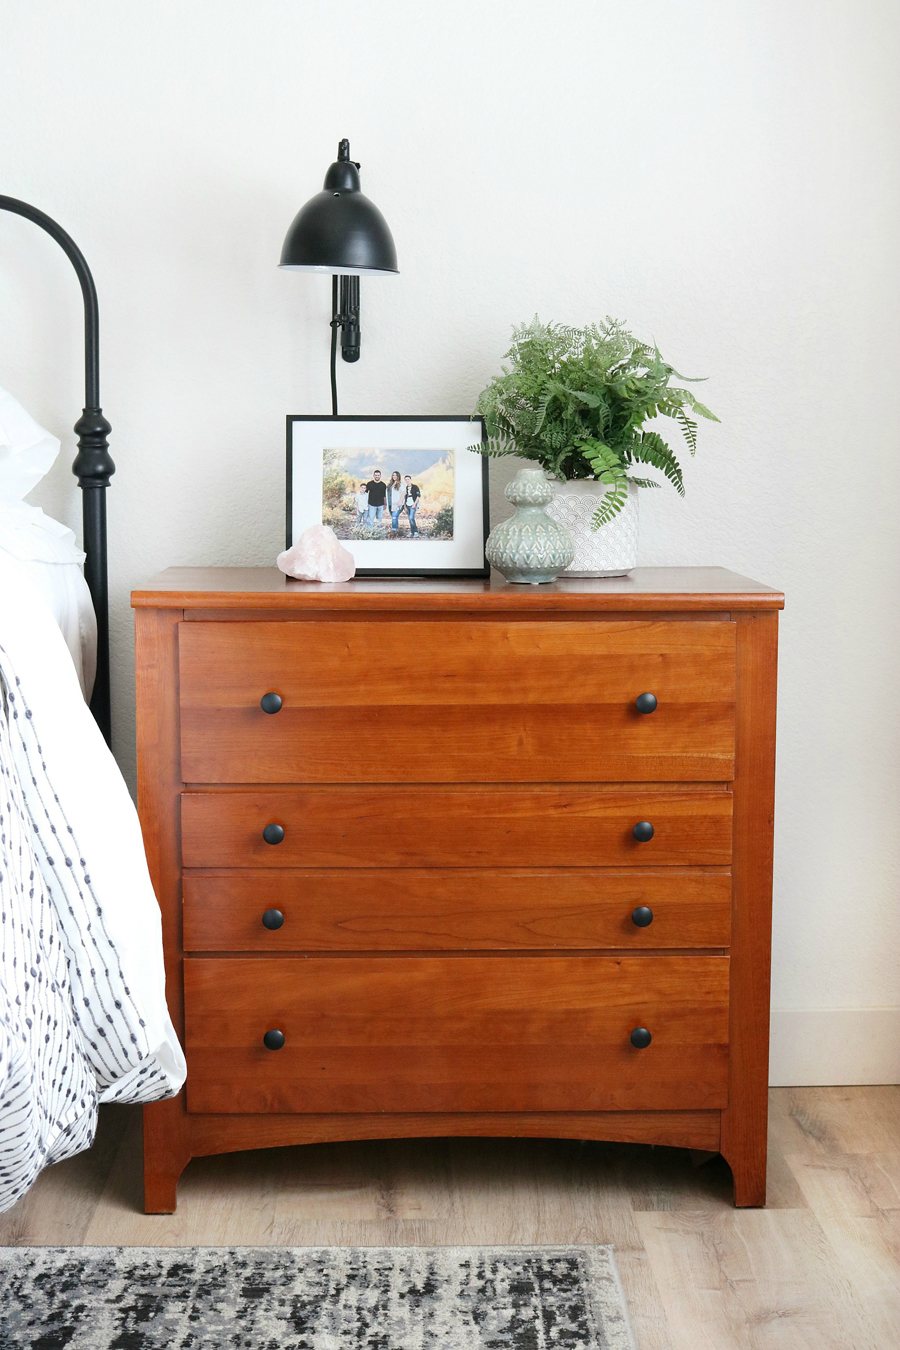 Boho Inspired Bedroom Nightstand Decor with a Teak Nightstand